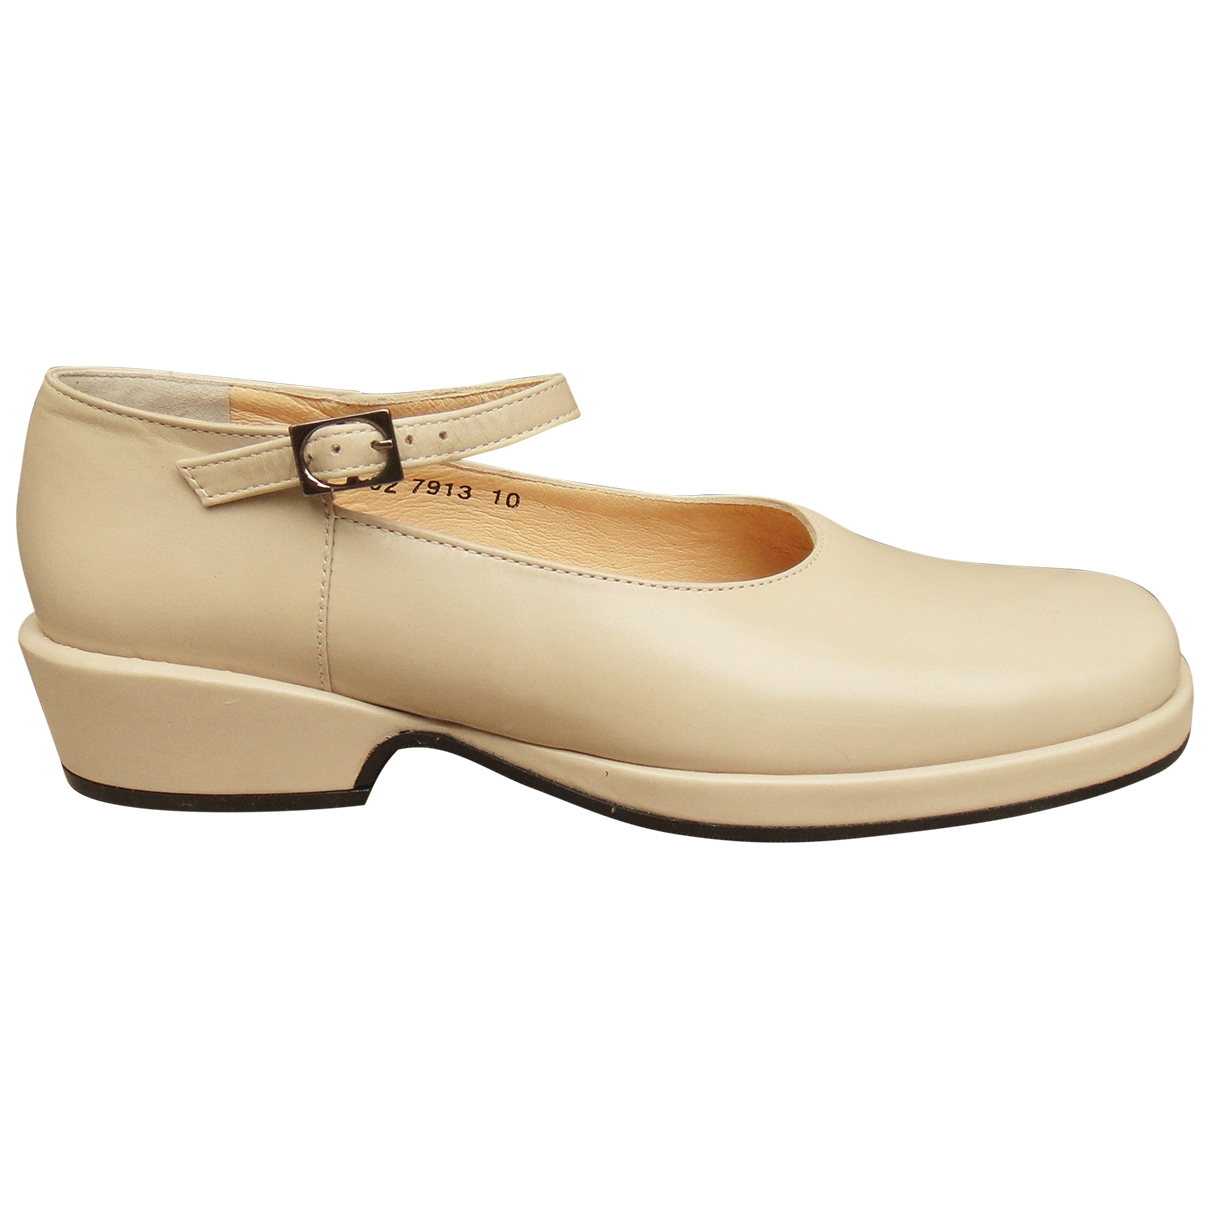 Robert Clergerie \N Beige Leather Flats for Women 5 US